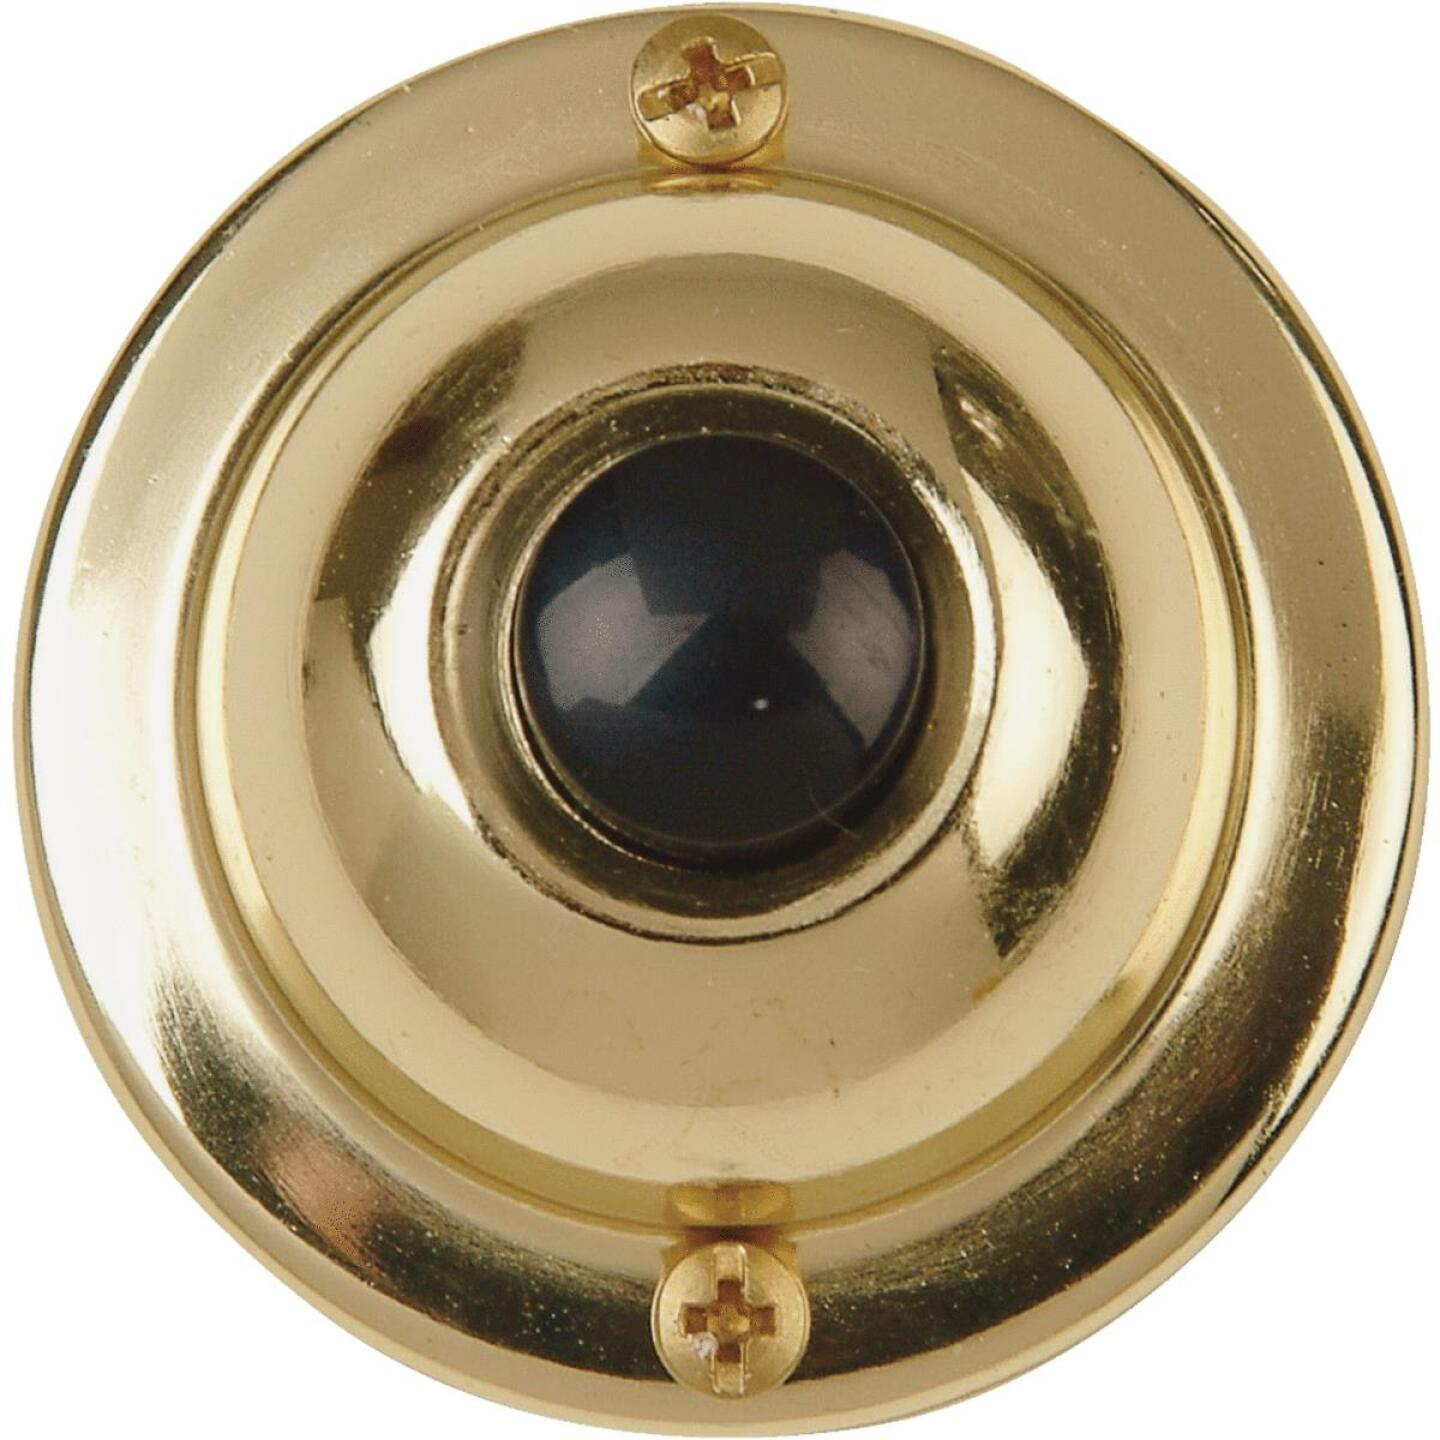 IQ America Wired Brass Classic Doorbell Push-Button Image 1